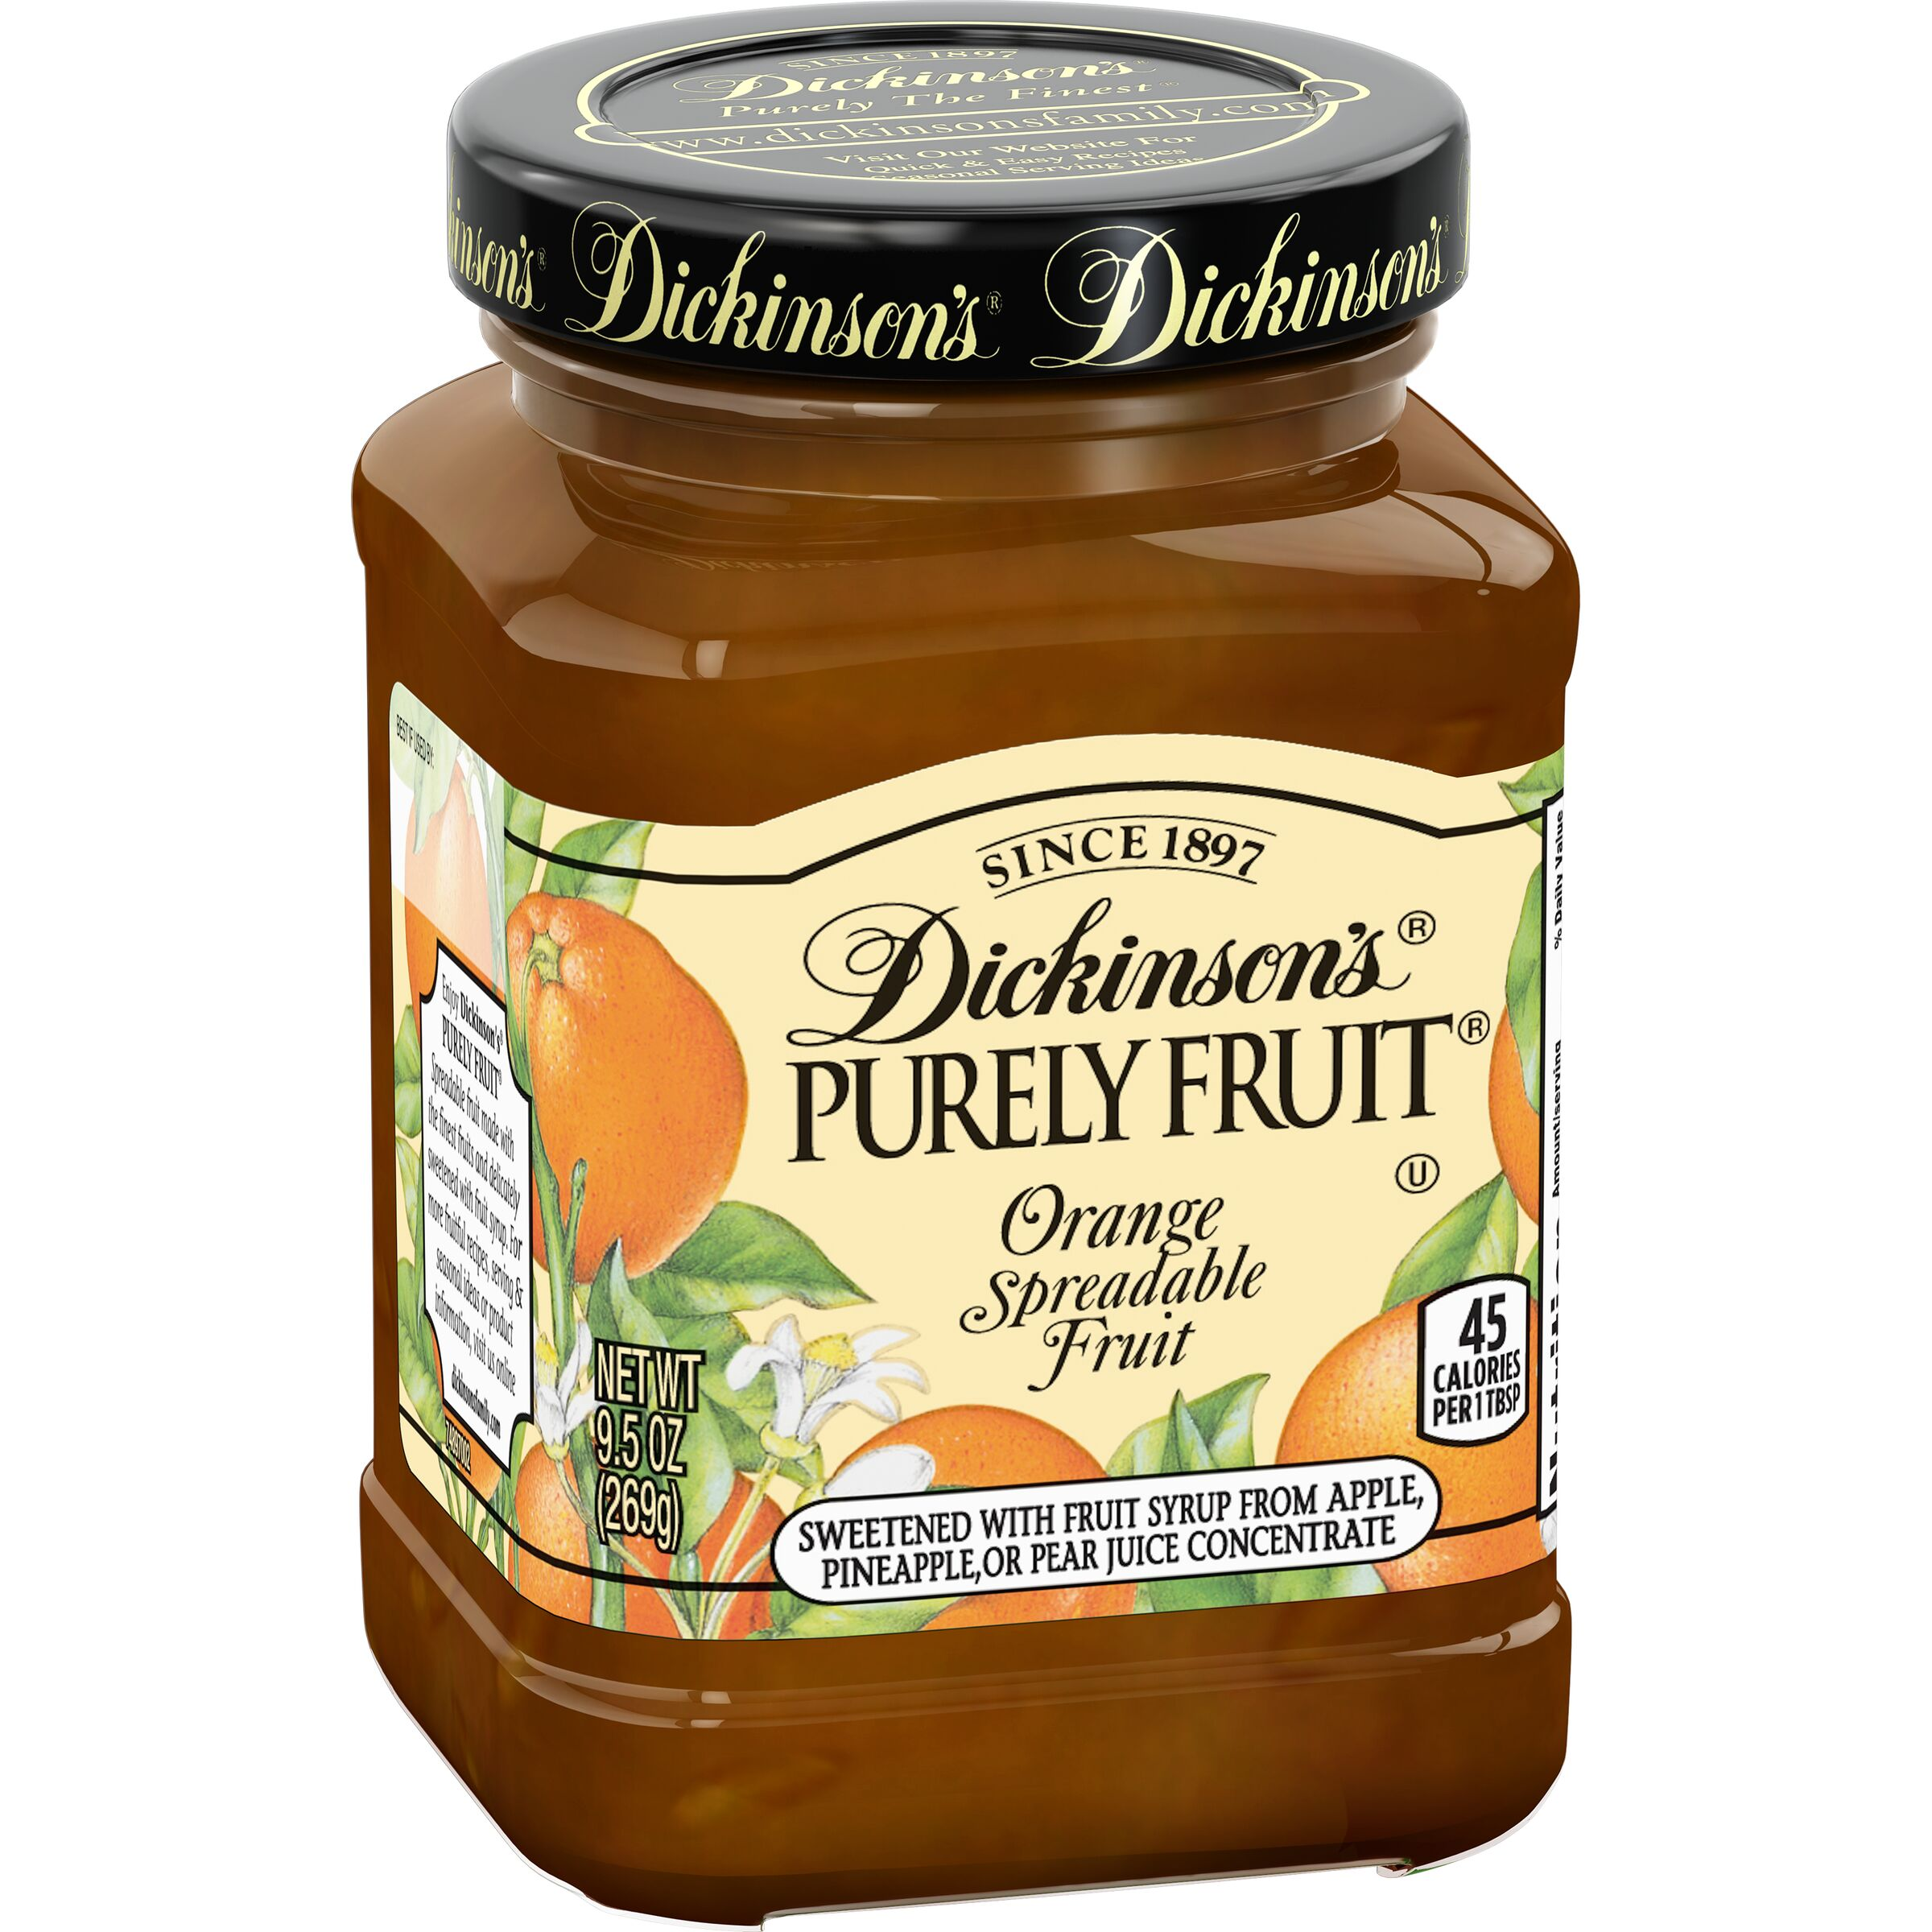 Dickinson's Purely Fruit Orange Spreadable Fruit